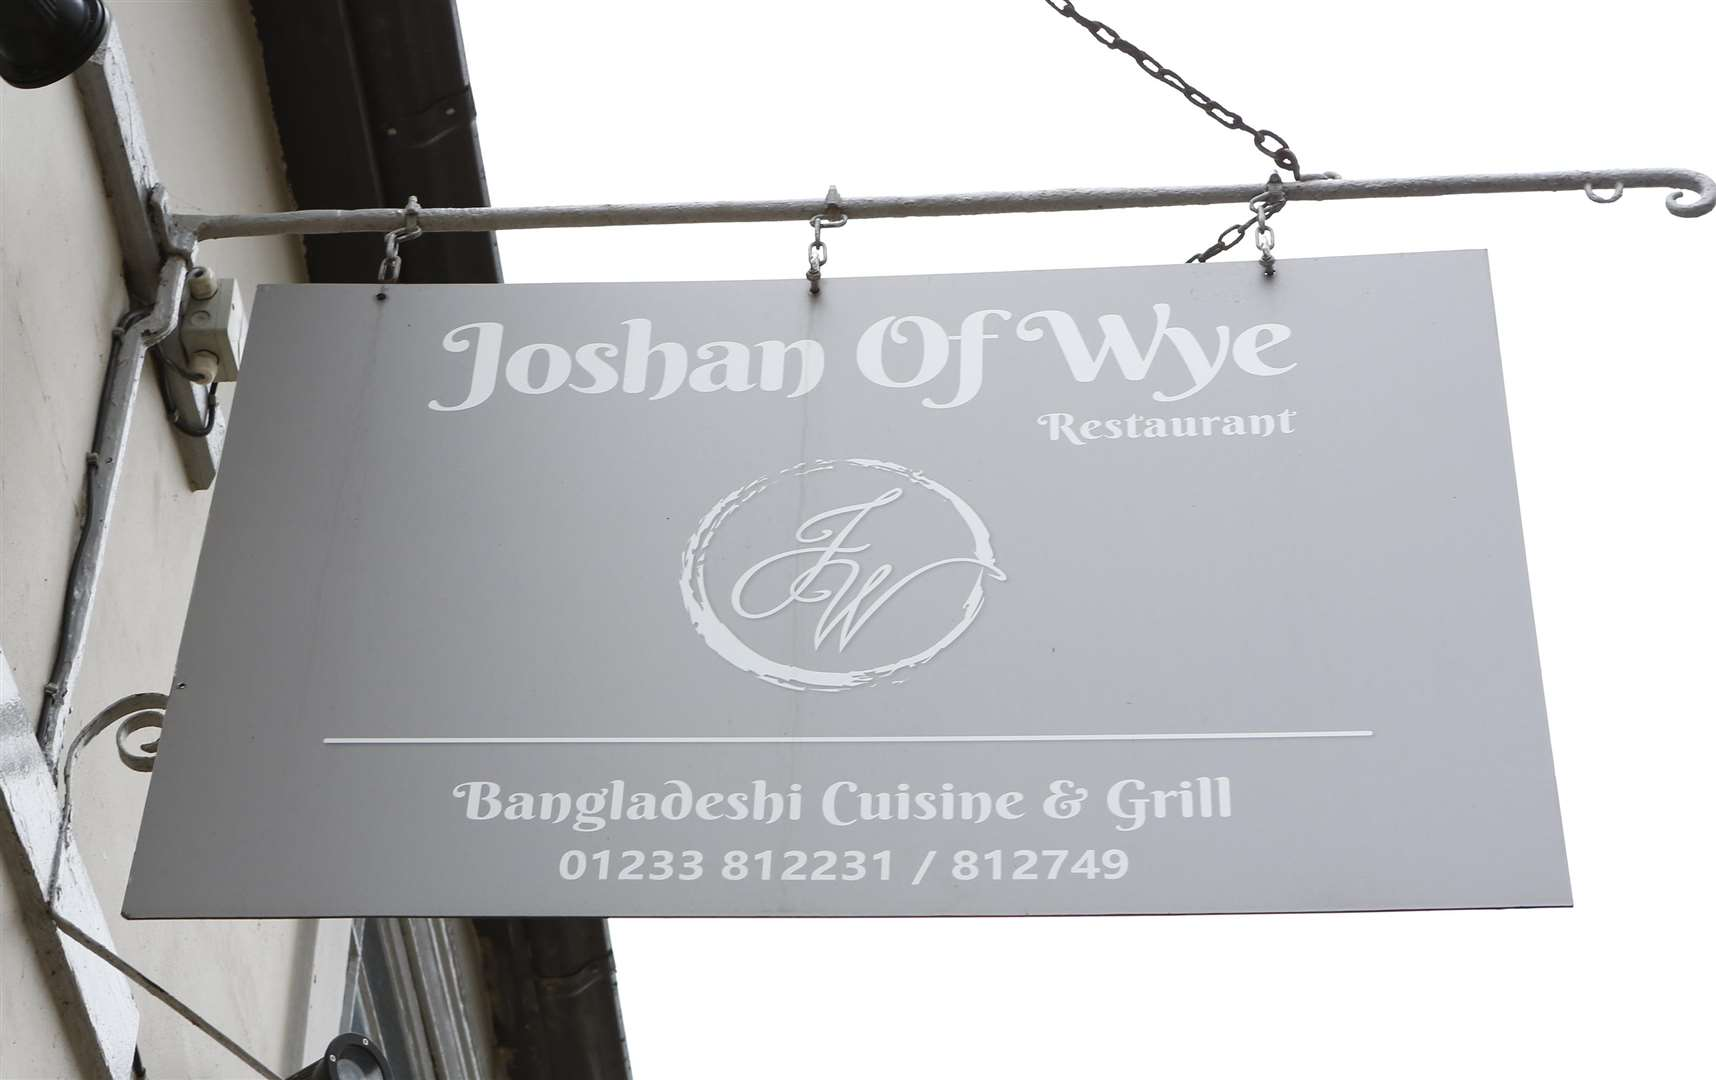 The Joshan of Wye is reopening today. Picture: Andy Jones